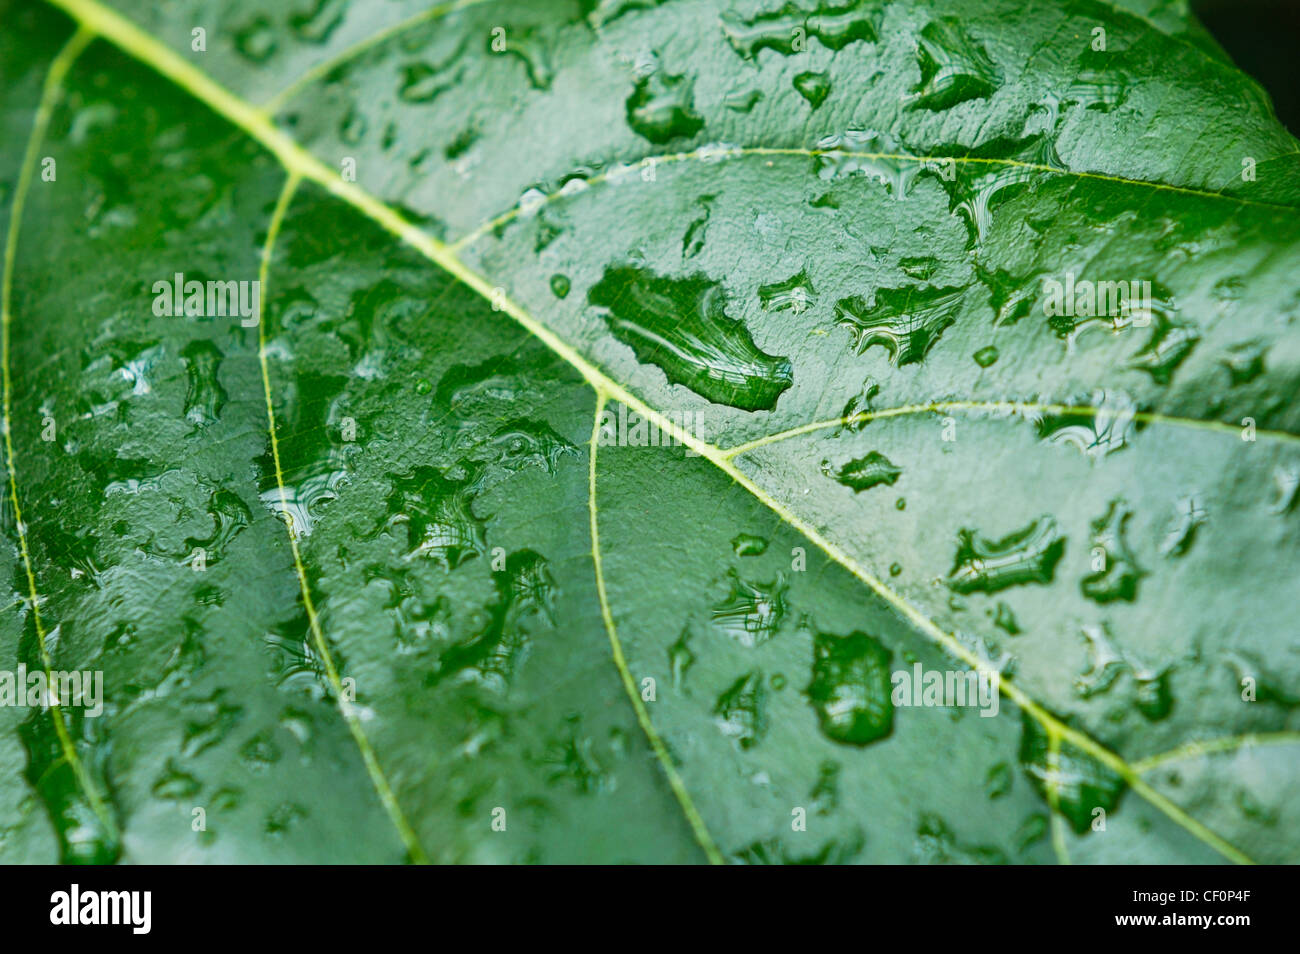 Closeup of a leaf with rain drops on it abstract nature background - Stock Image